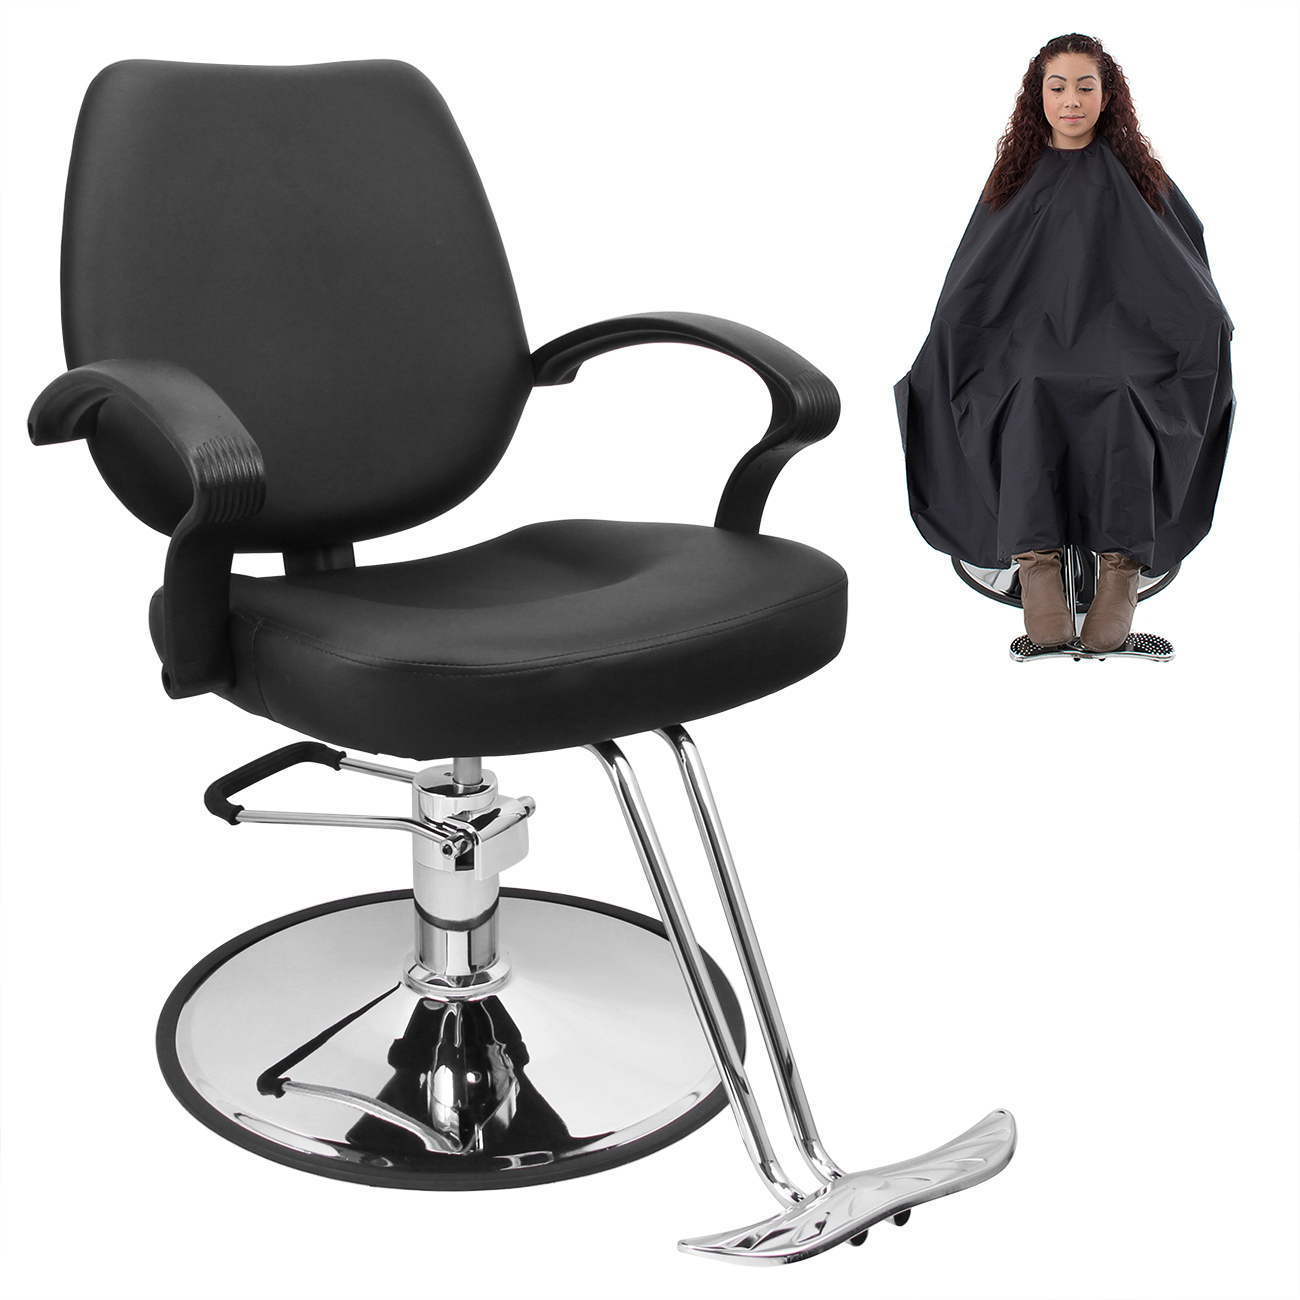 Bellavie Classic Hydraulic Barber Chair Salon Beauty Spa ...